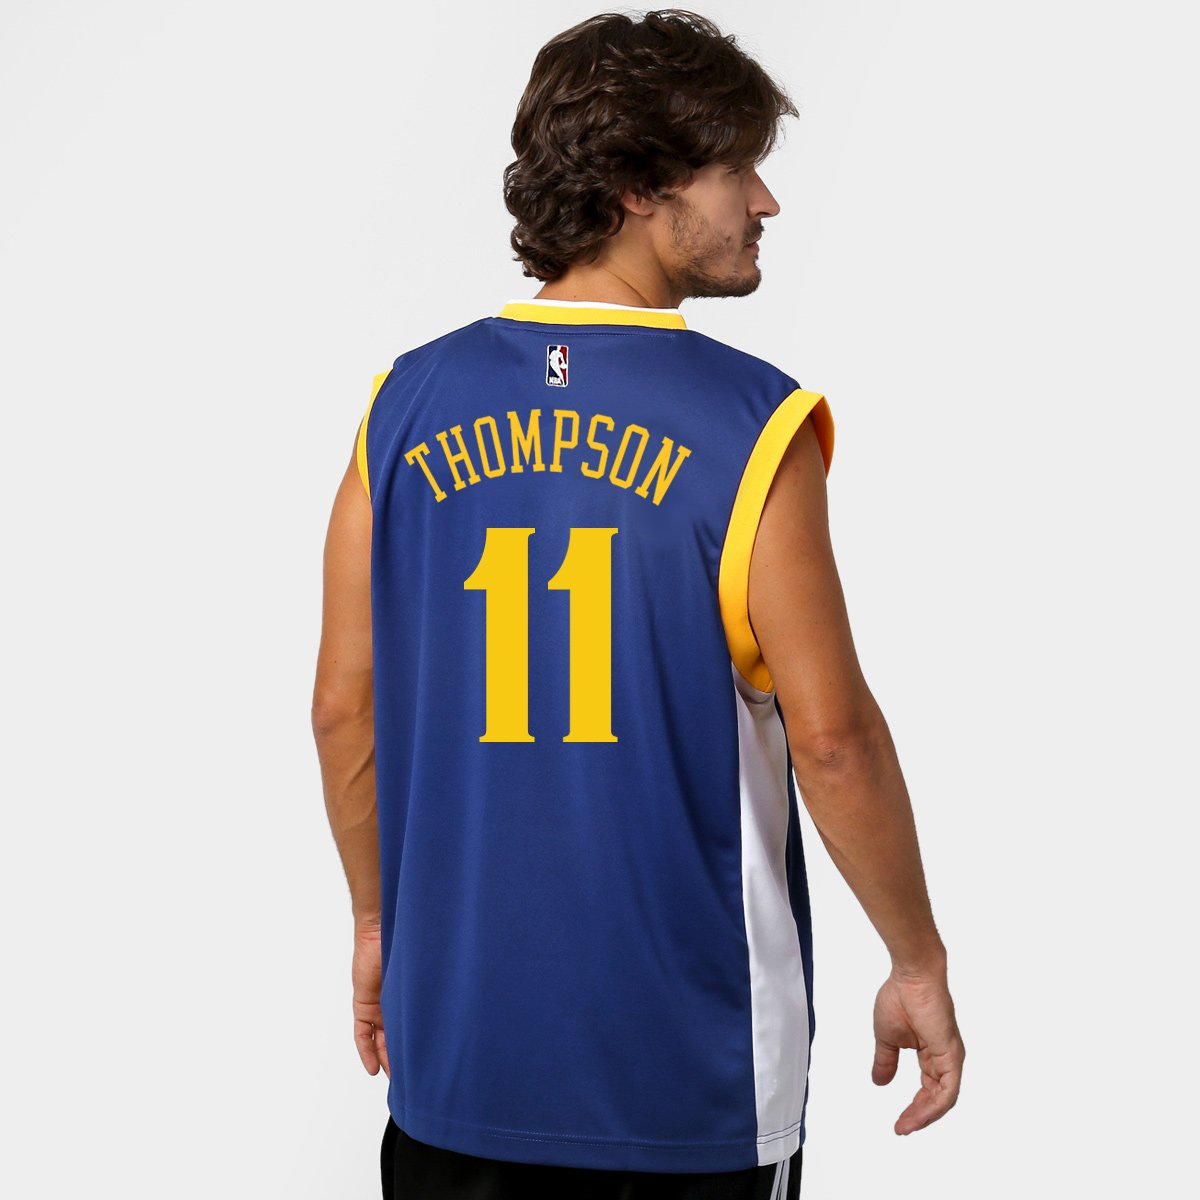 aa55e7f37 Camiseta Regata Adidas NBA Golden State Warriors Road - Thompson nº 11 -  Compre Agora